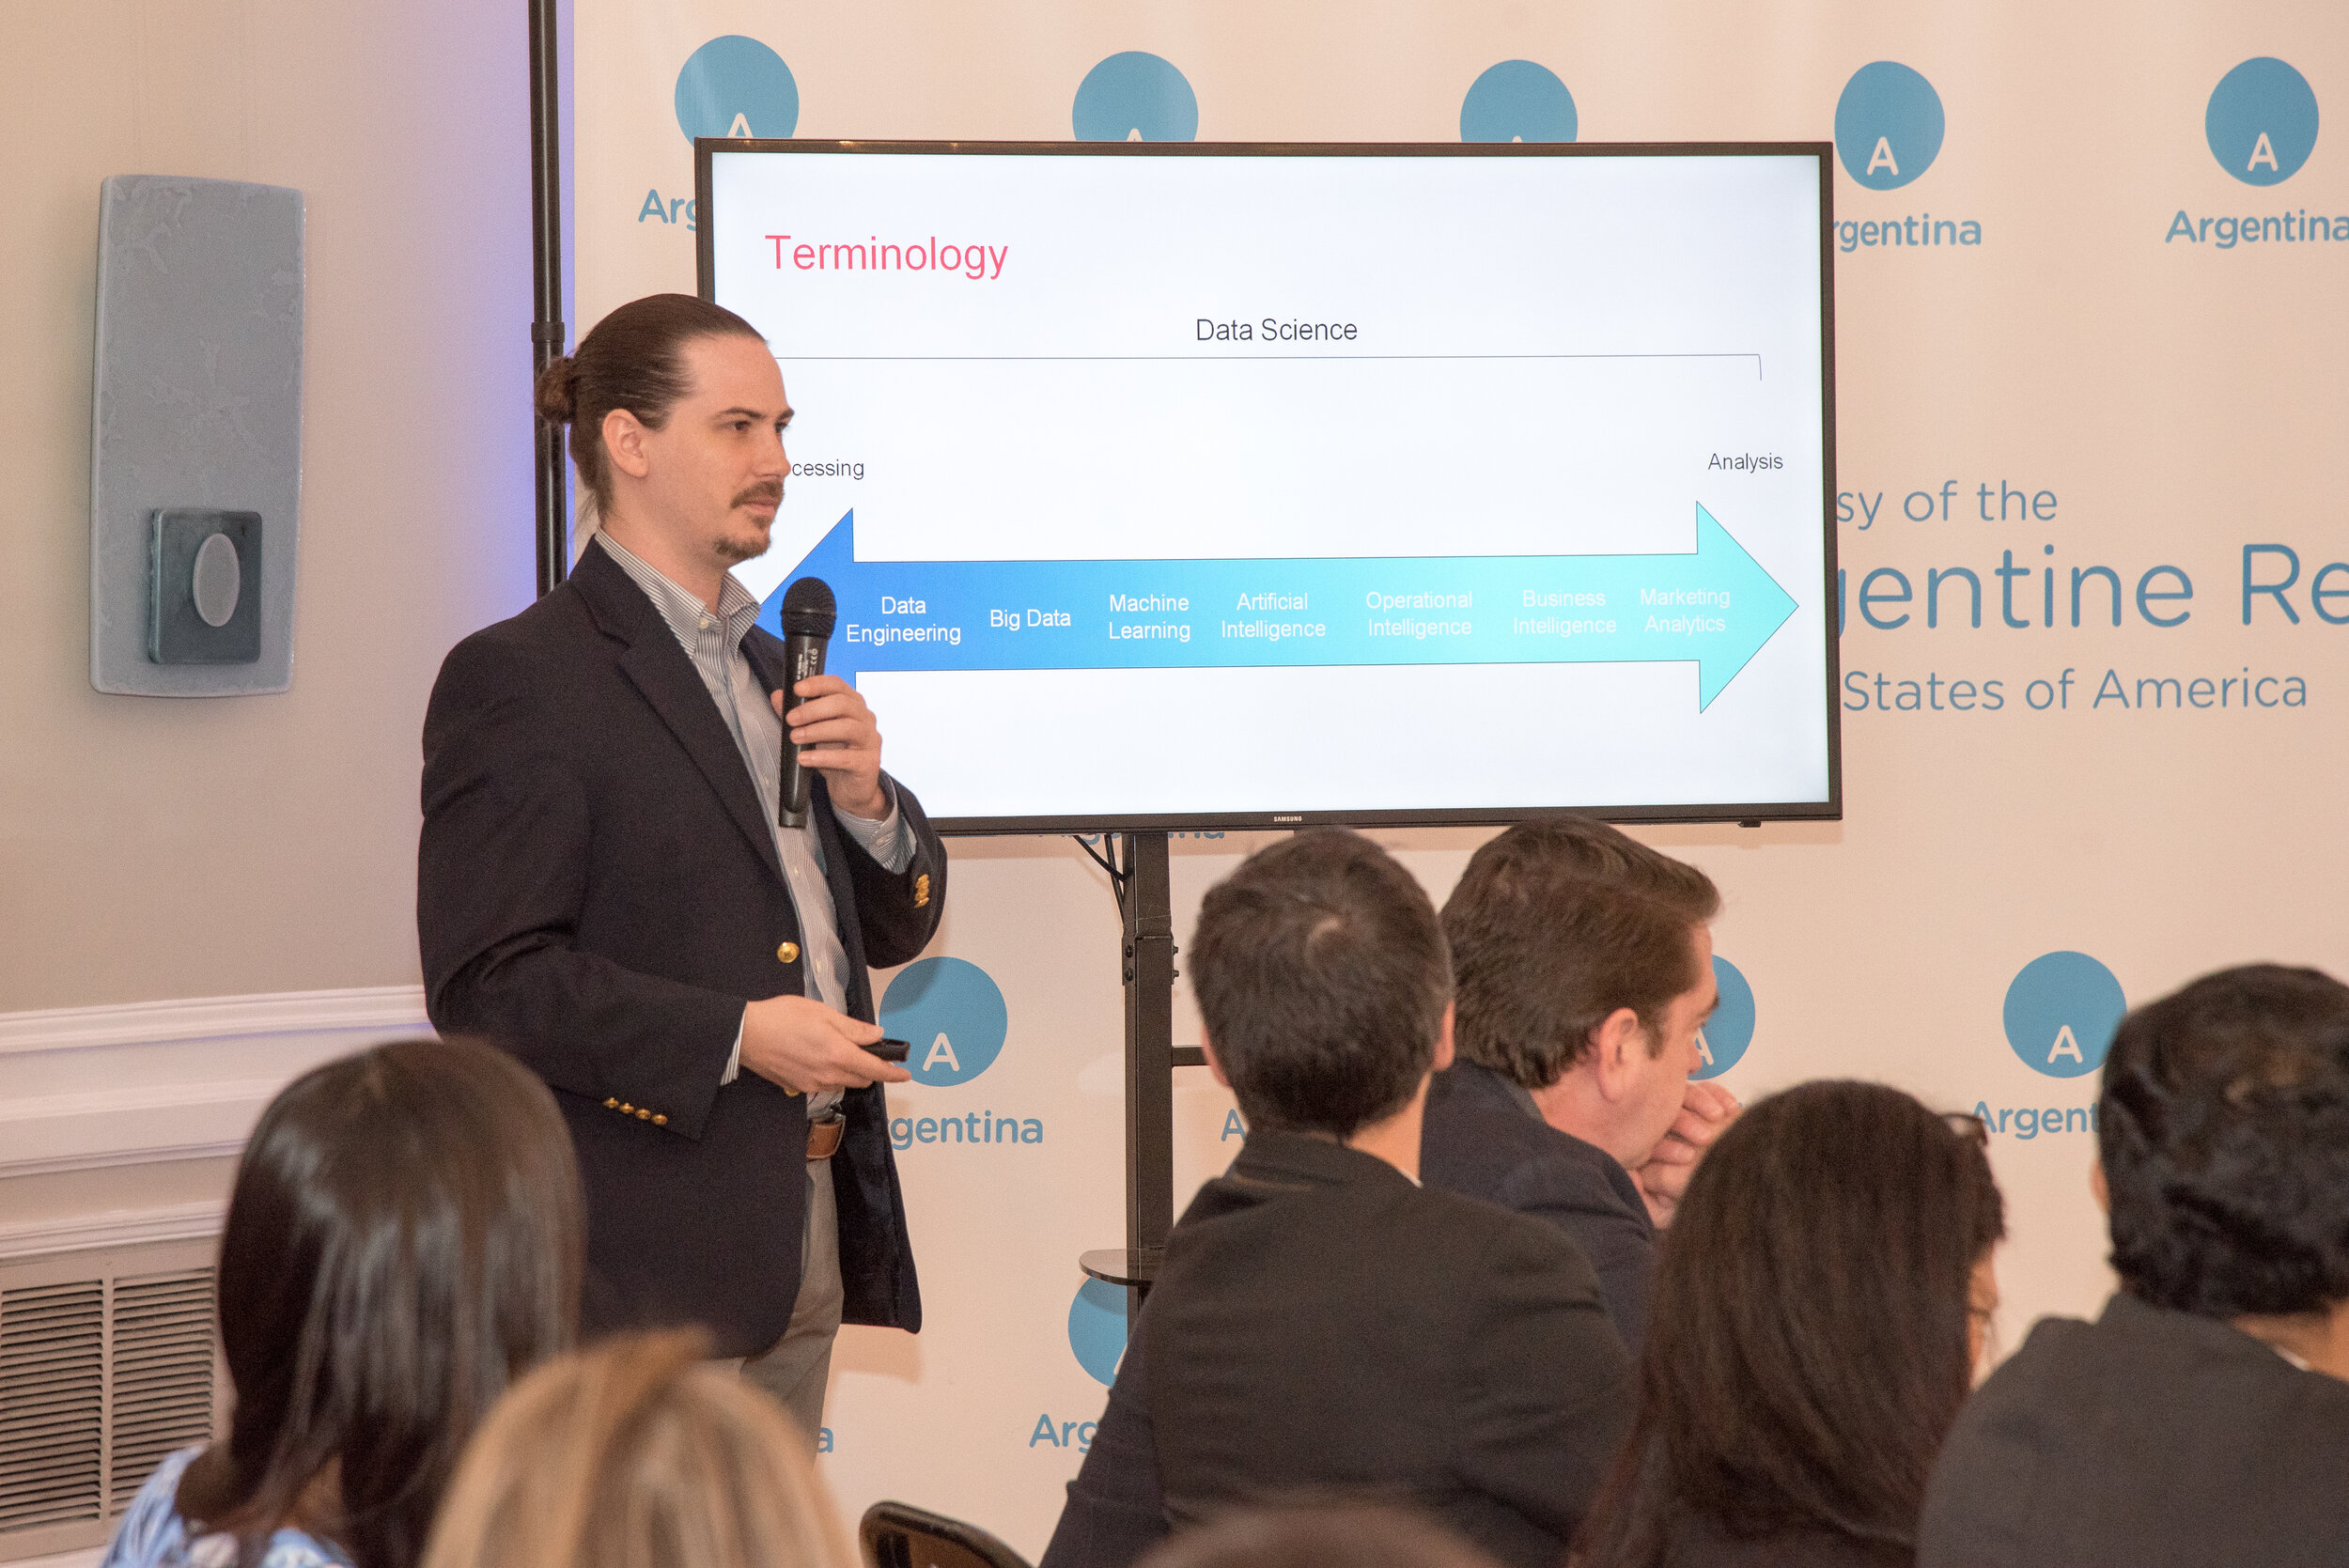 Scott Crespo discussing the diverse terminology and disciplines in the data science field.  Photo courtesy of the Argentinian Embassy.